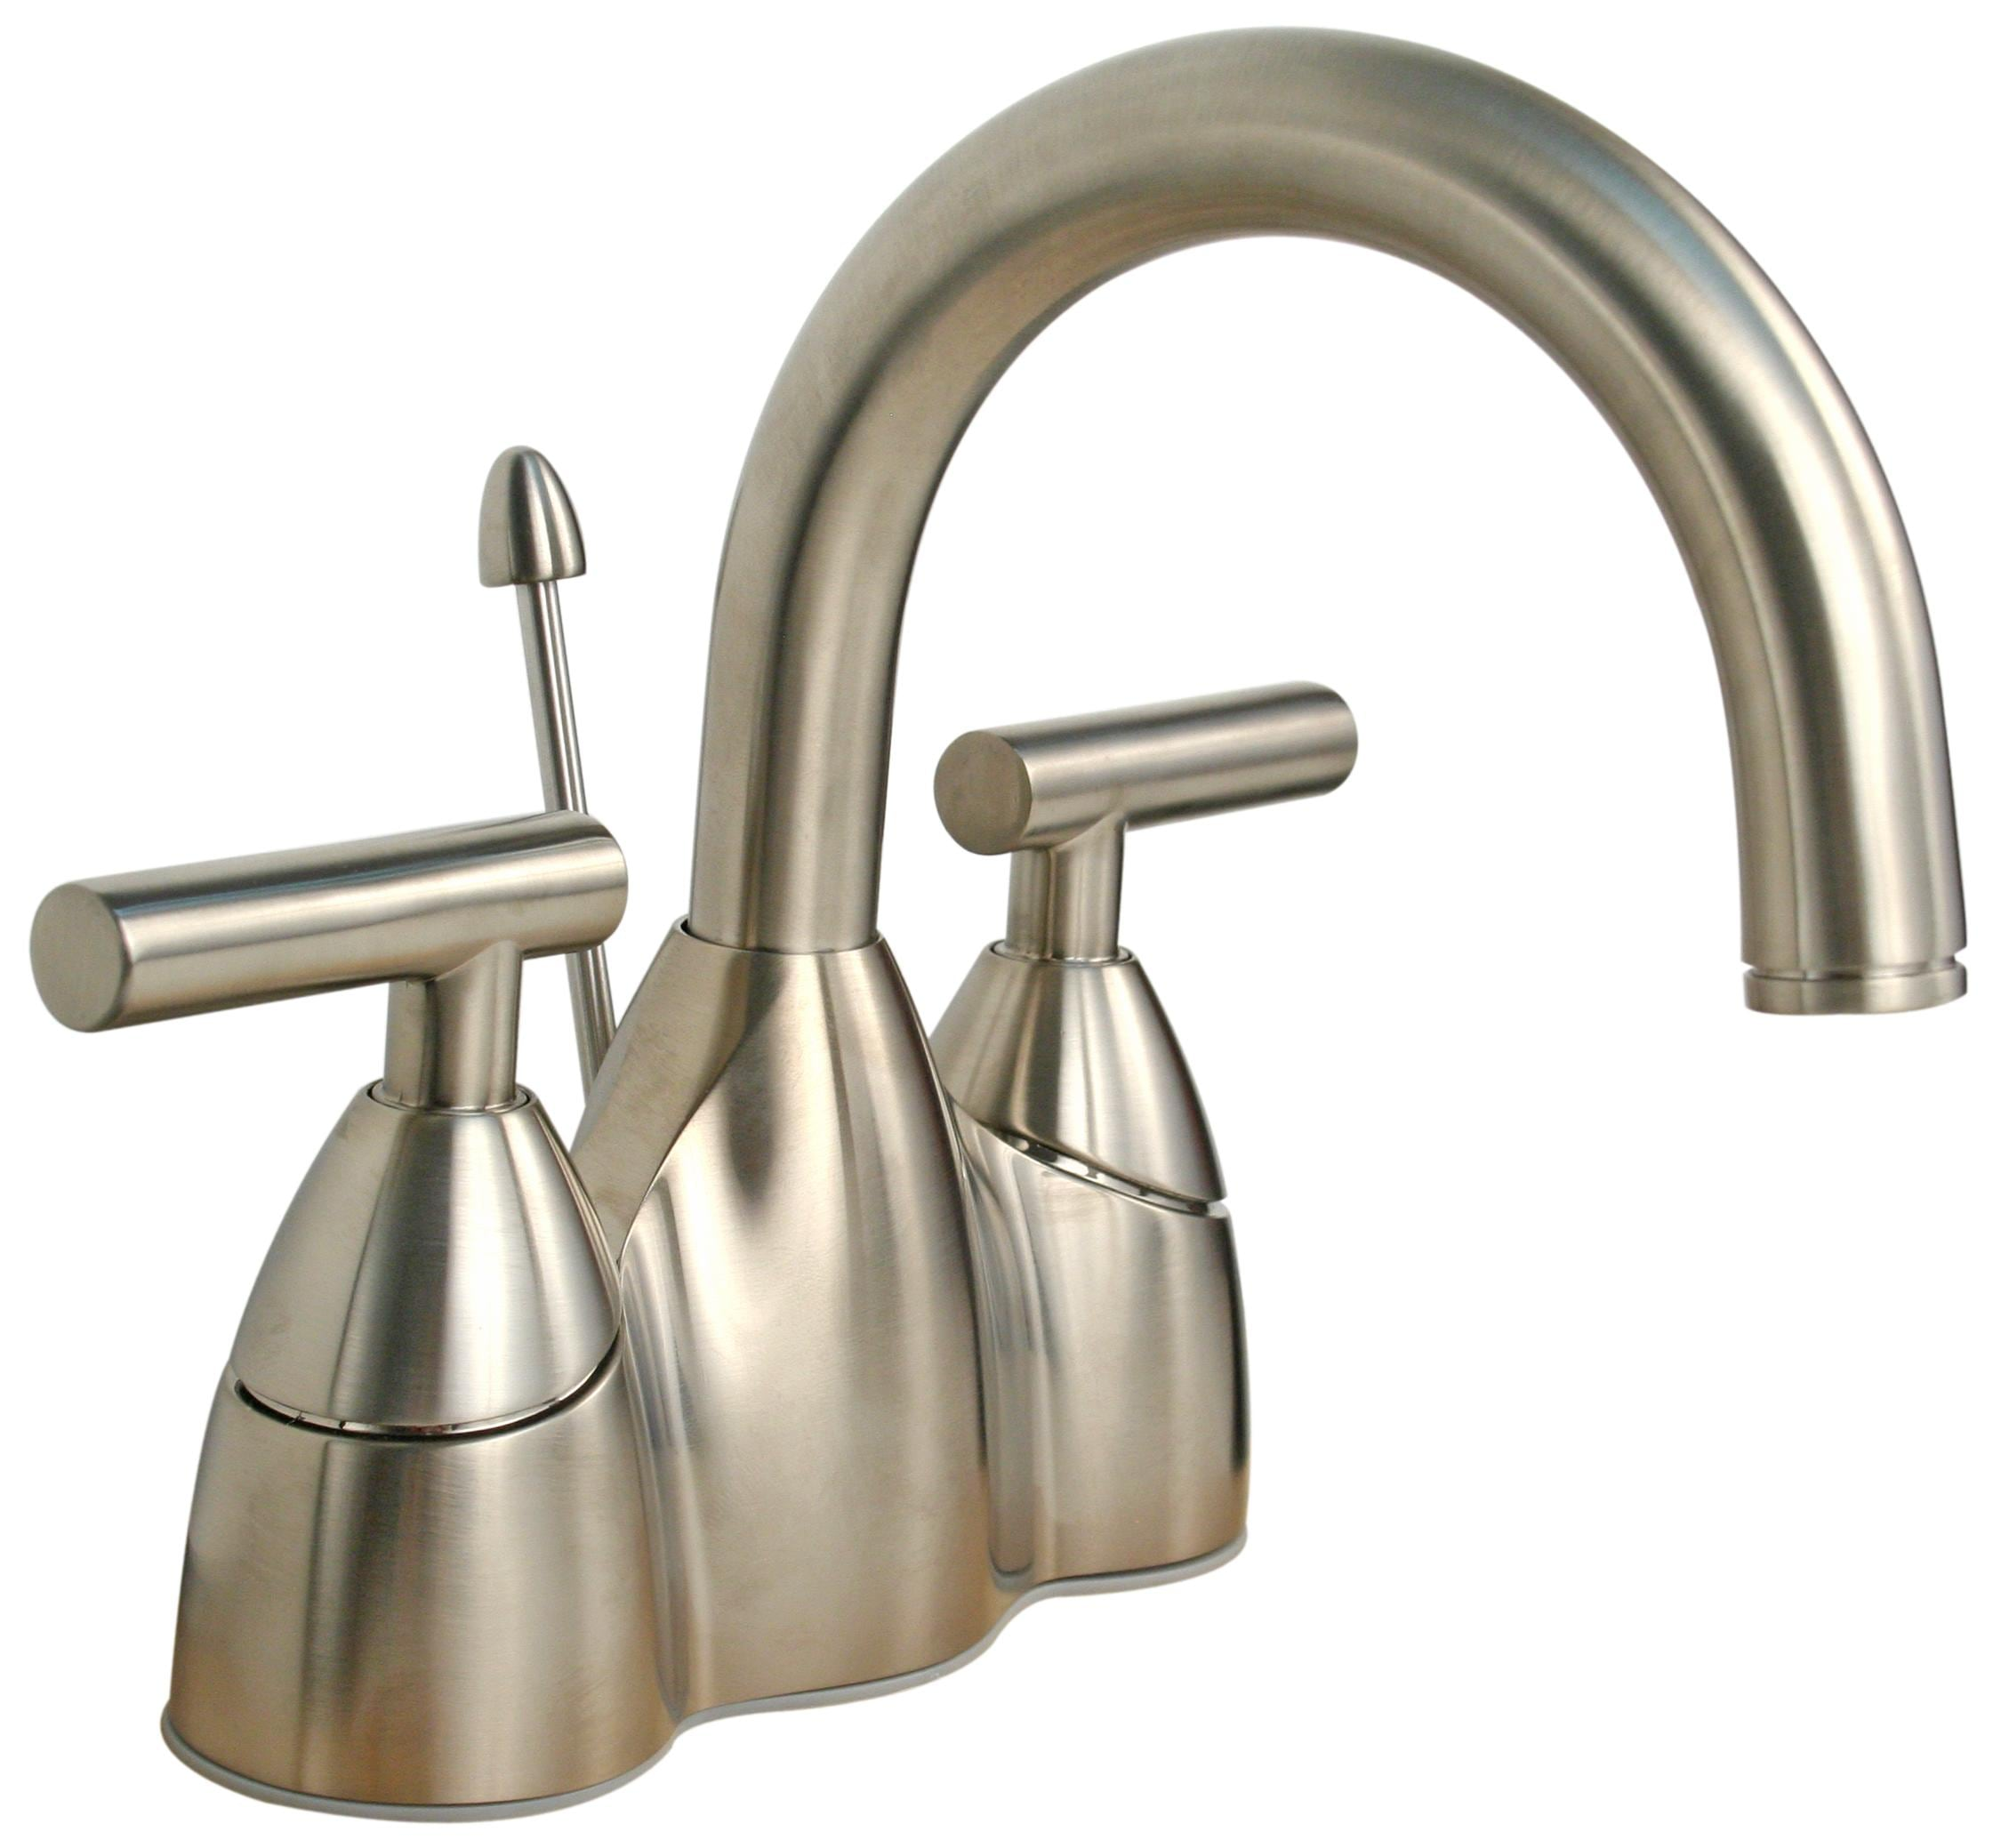 Price pfister contempra brushed nickel centerset bathroom faucet 13289090 for Price pfister bathroom sink faucets